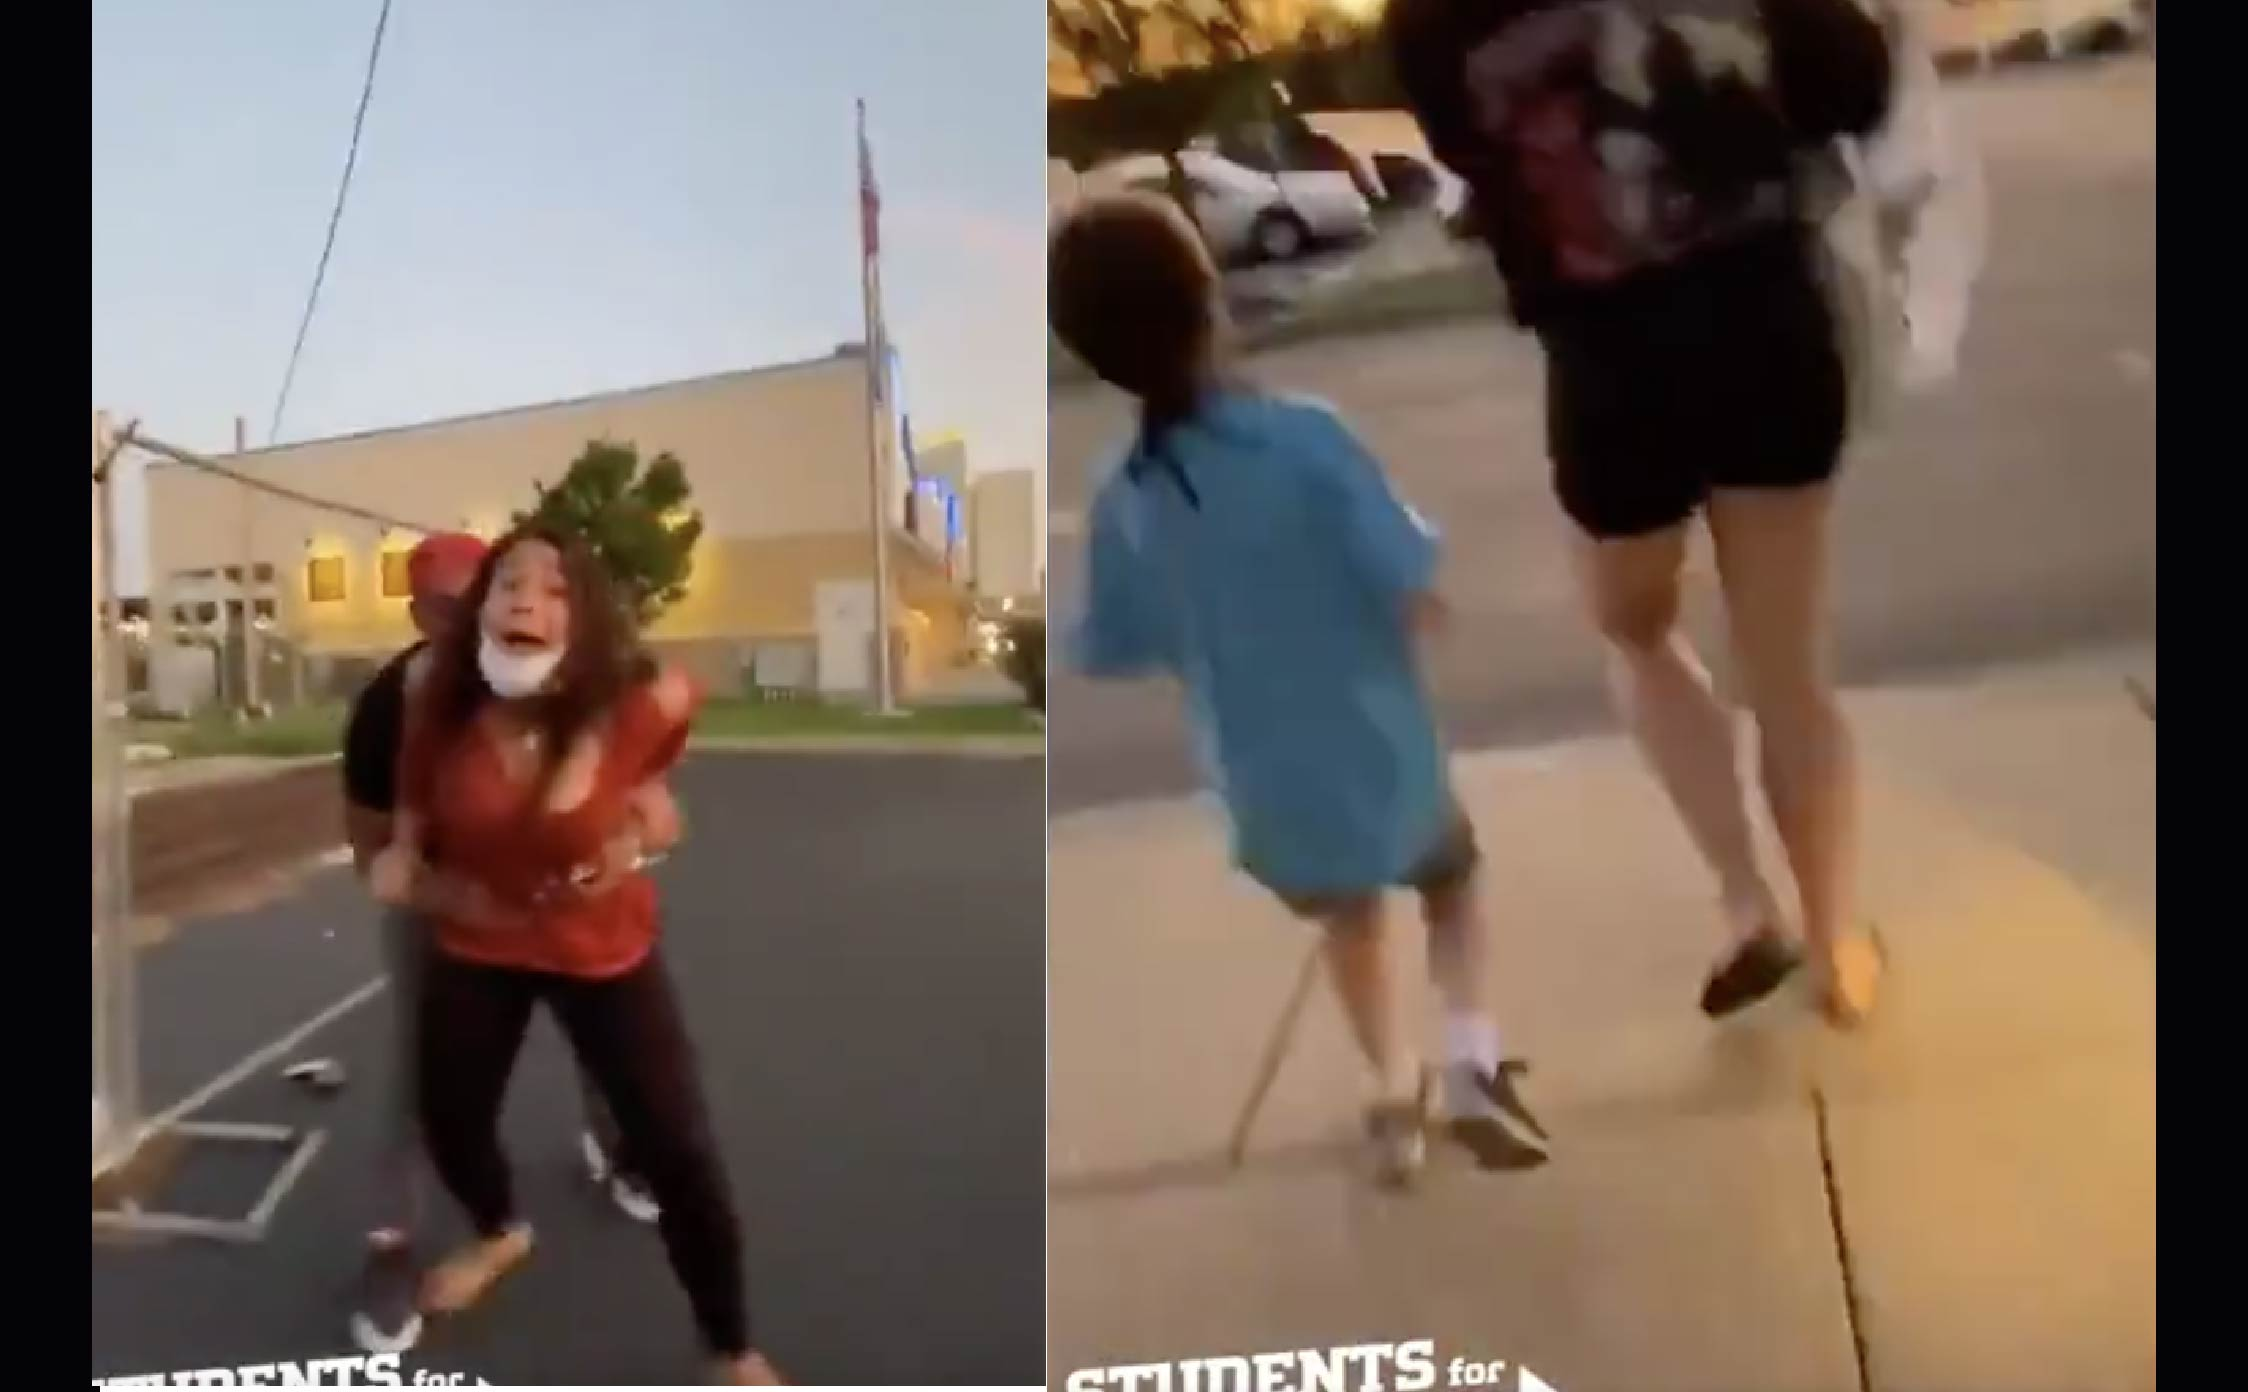 [VIDEO] Crazed Biden Supporters Terrorize 7-Year-Old Child, Steal His MAGA Hat, Tear Up Pro-Trump Signs